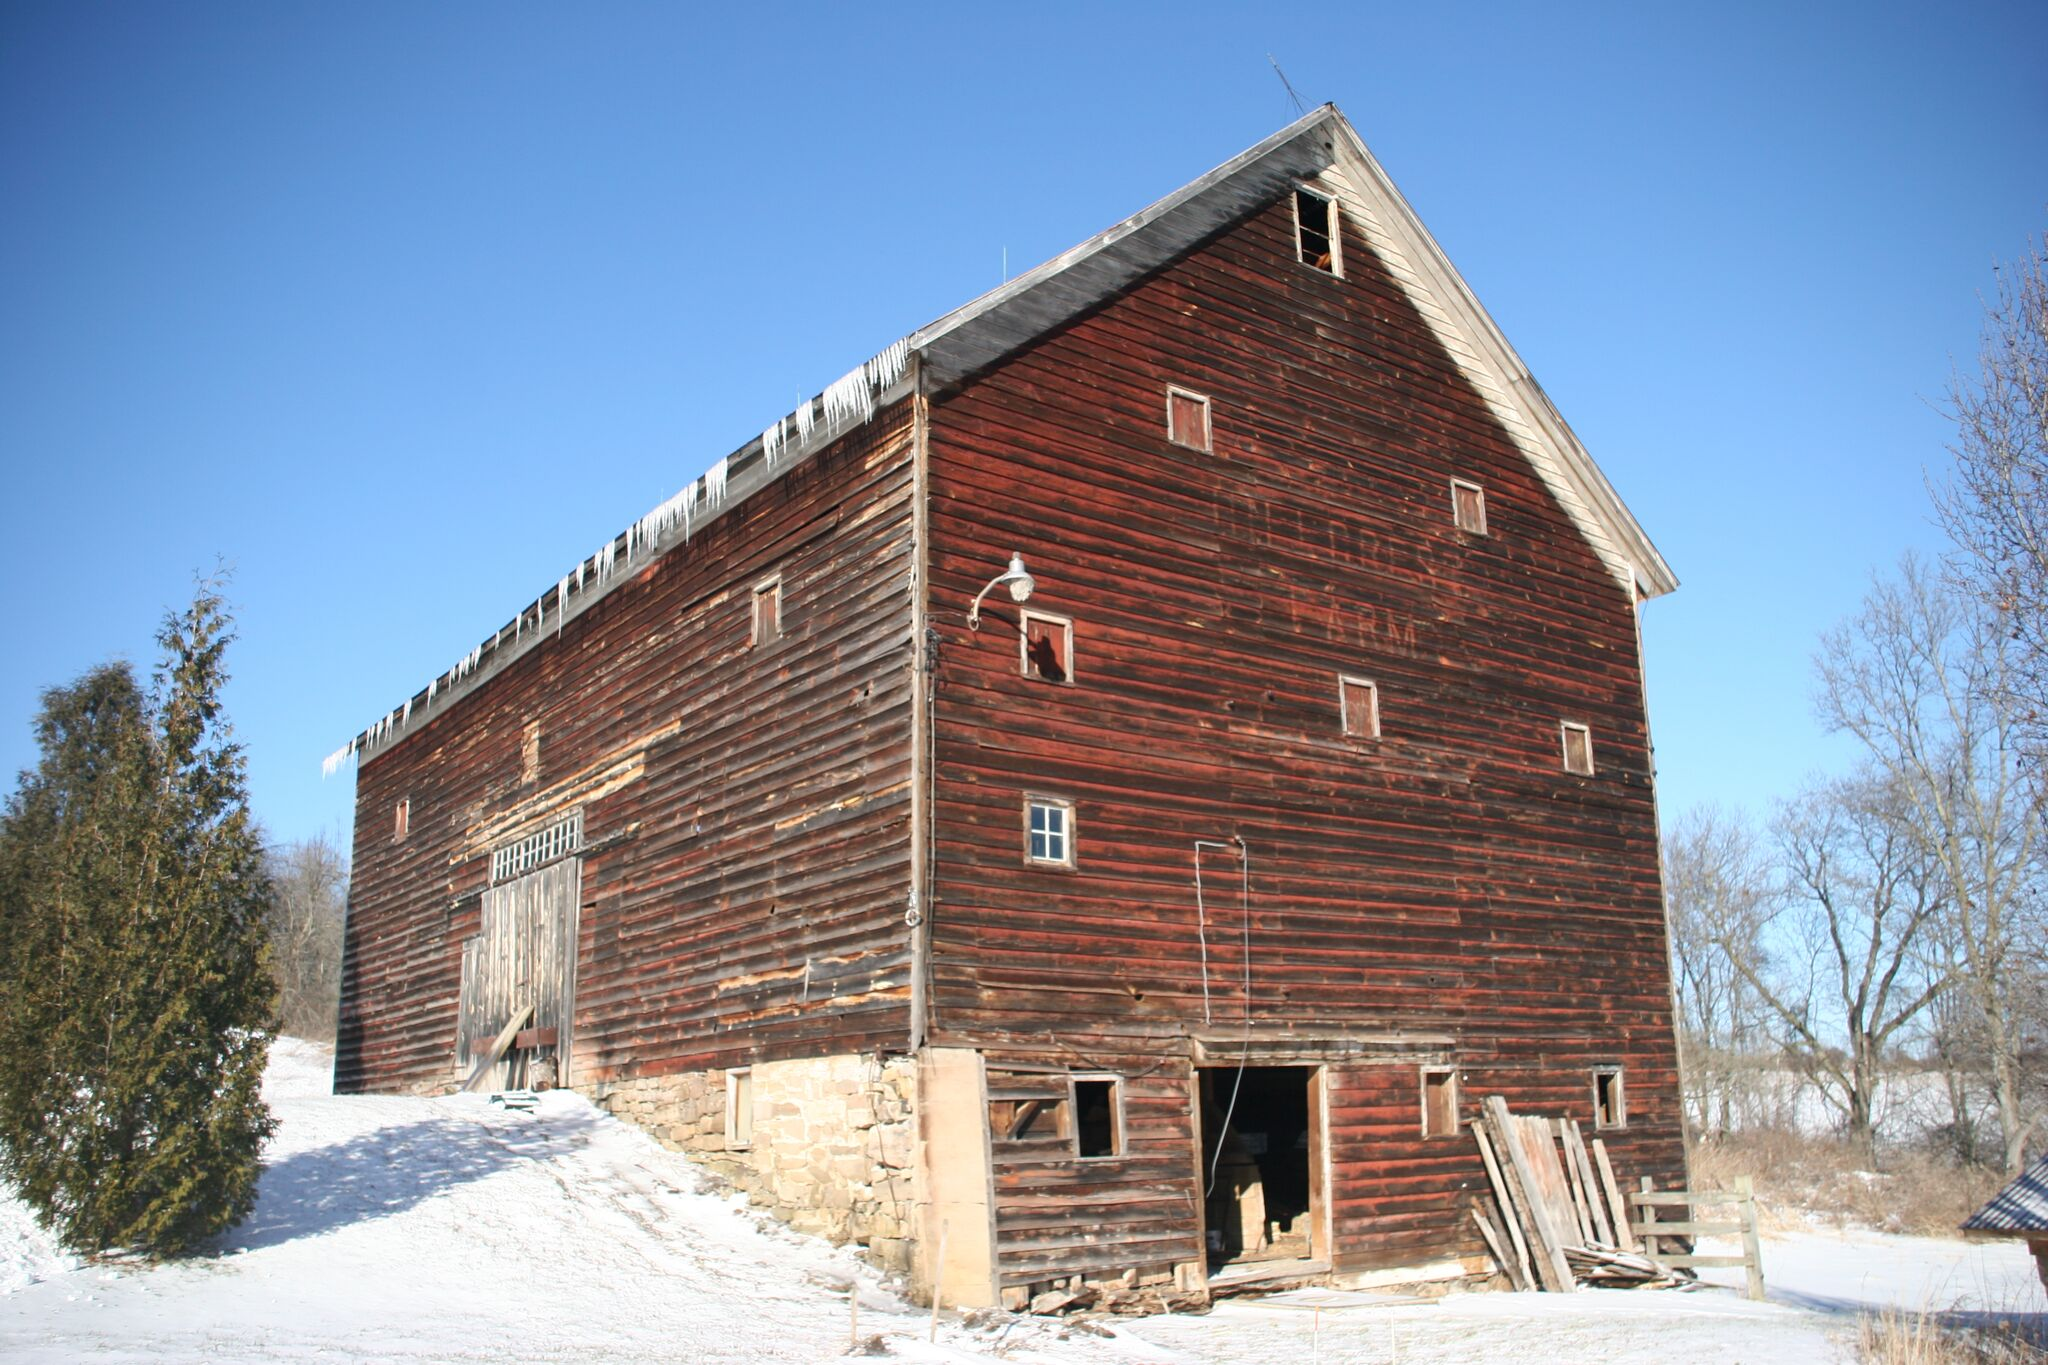 """Type:  Dutch Barn  Name: Hill Crest Farms Dimensions: 40' x 64'6"""" Side Wall Height: 22' Era: Post Revolutionary War, Circa 1790  This undeniably unique frame is a rare find indeed. It represents an early example of a Dutch Barn conversion, where the Dutch Barn original to the property was converted into a much larger English style hay barn. Additionally, this Dutch Barn is quite special in that it's conversion, which took place in 1889, was documented most well in a hand written journal. The original footprint of this barn would have been closer to 40' x 42', however the exact original dimensions are difficult to determine at this time. A conversion back to the original smaller footprint is possible and would honor more closely the Dutch Barn's original form."""